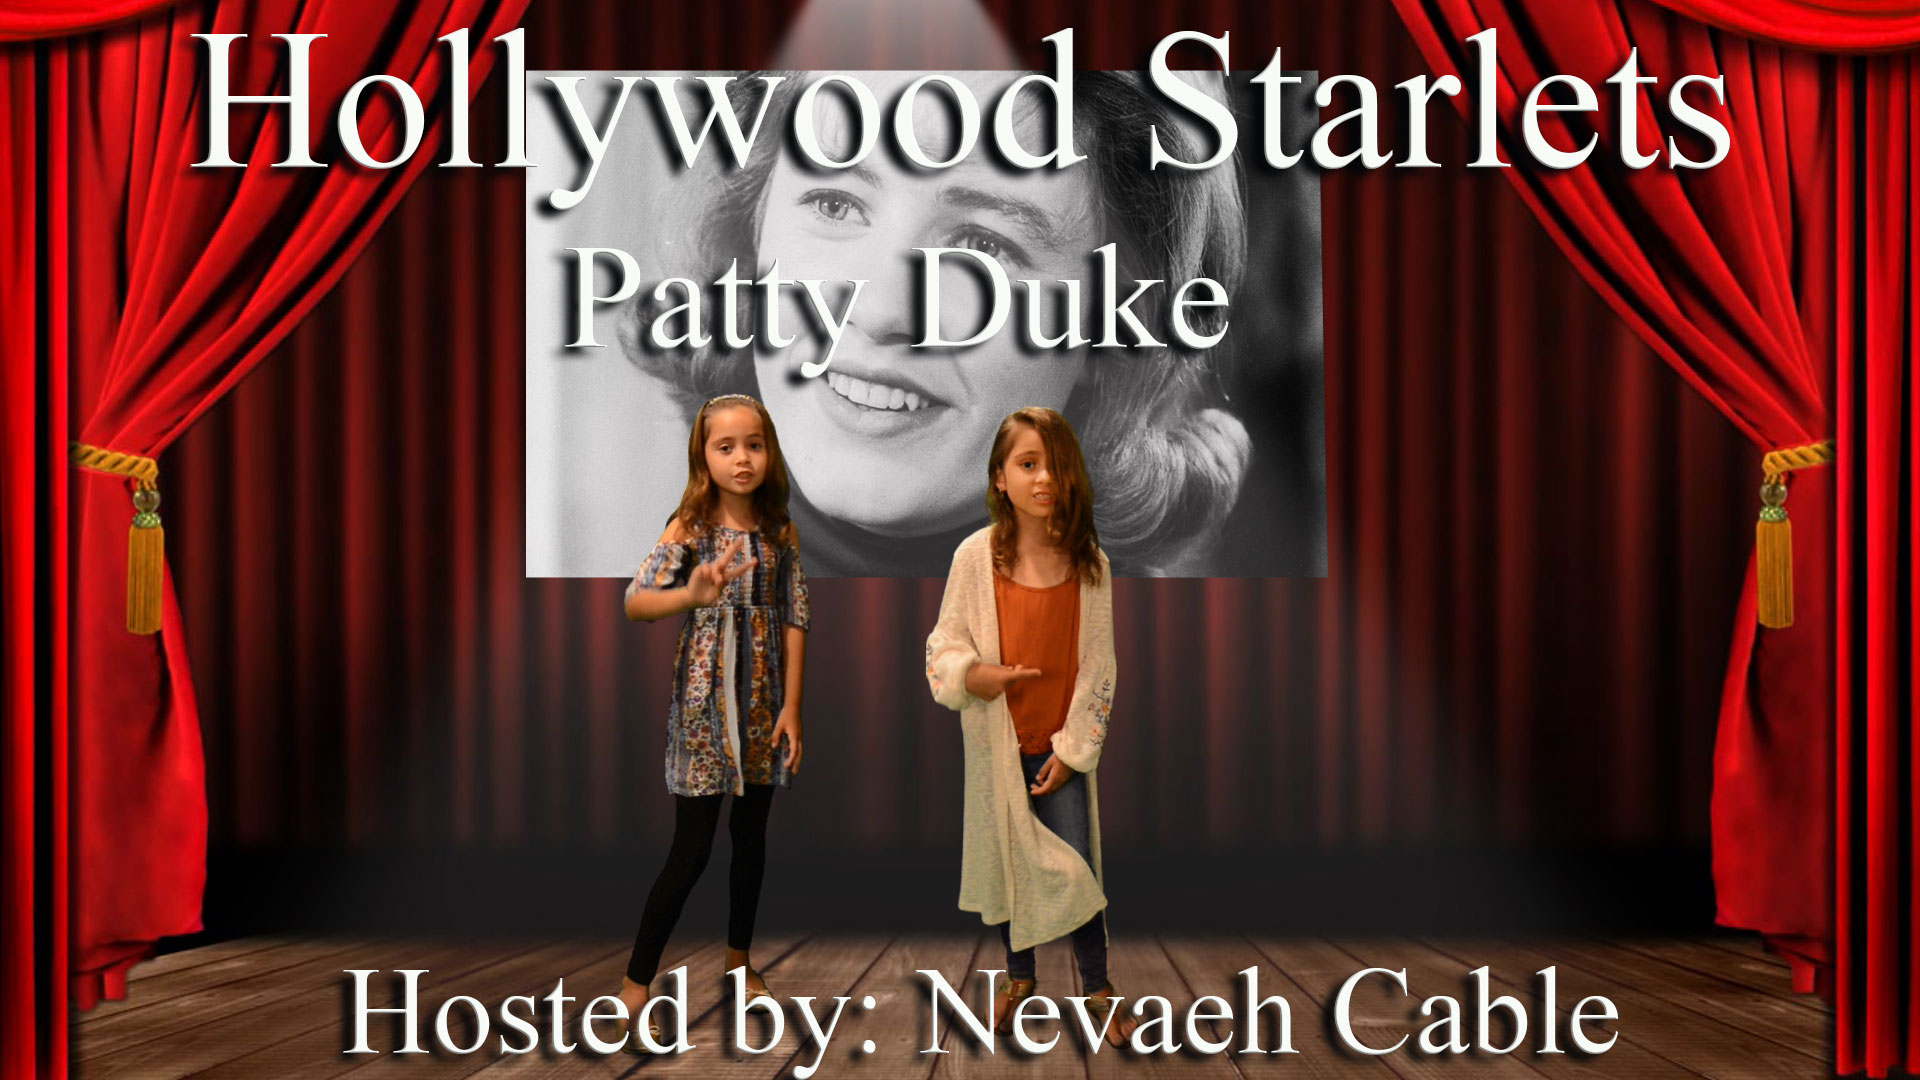 Hollywood Starlets II Patty Duke